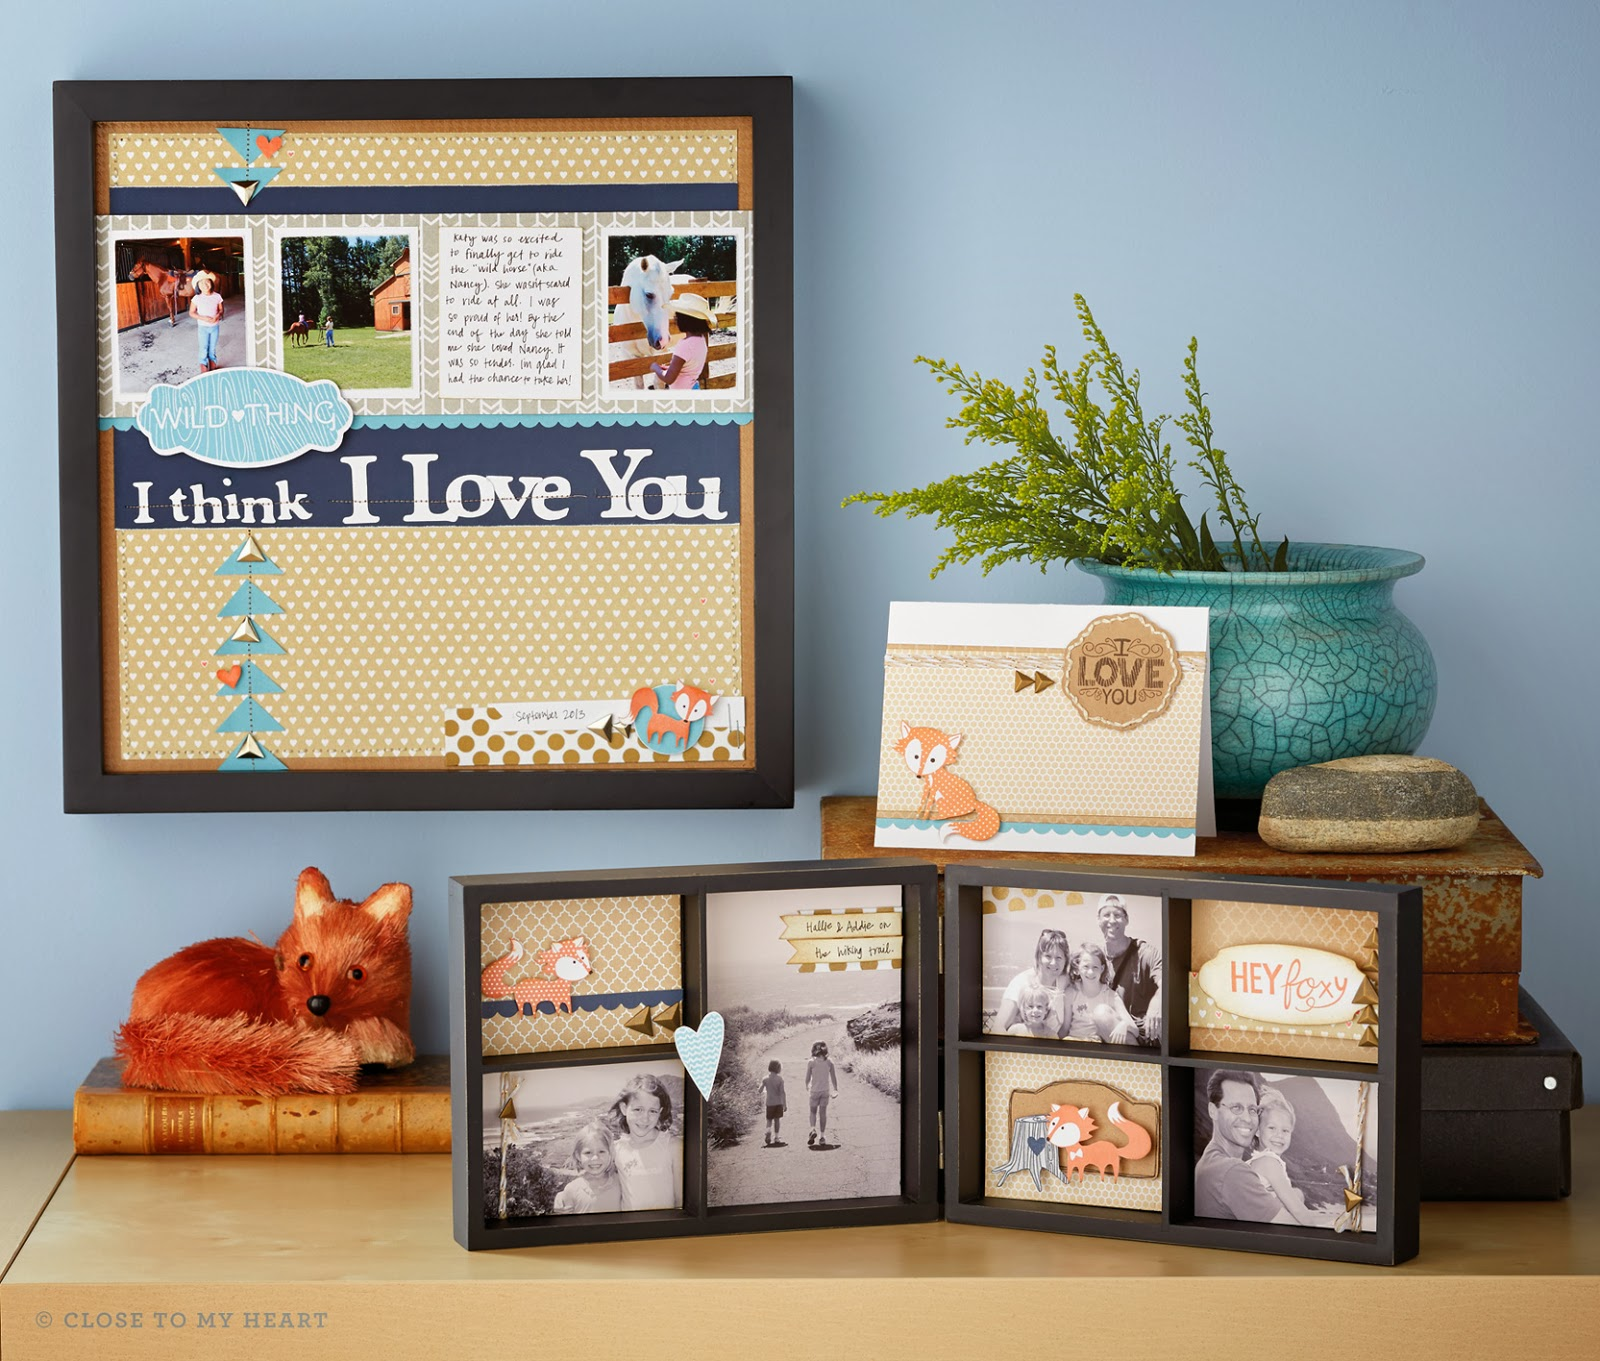 Stamp of the Month! Only $5.00 w/$50.00 purchase!